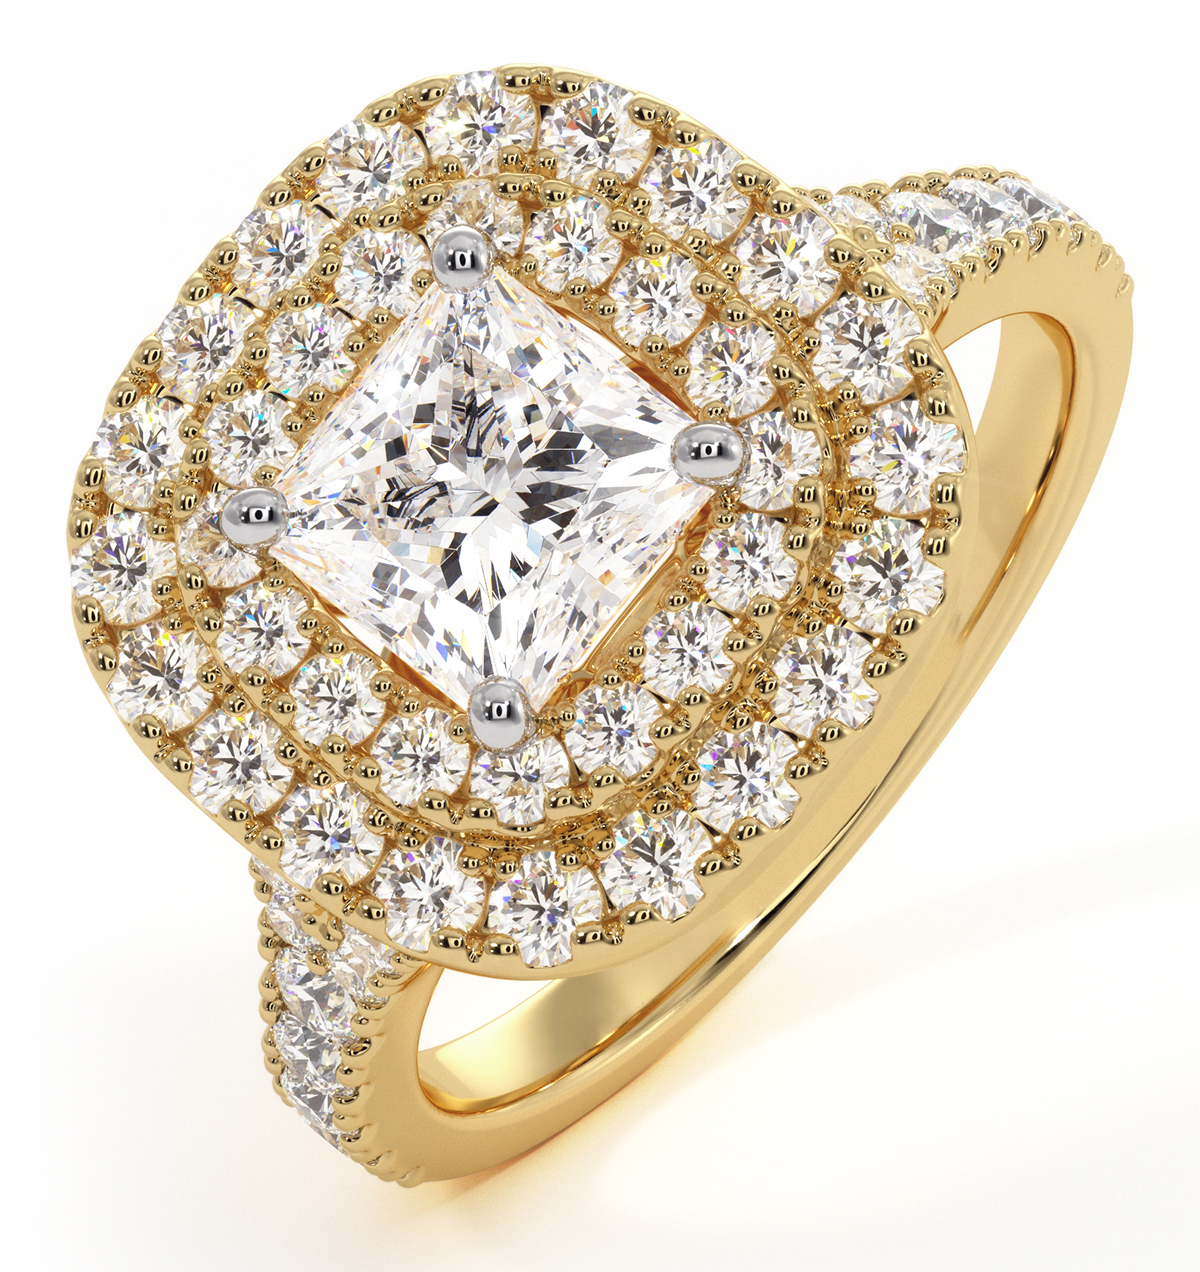 Cleopatra GIA Diamond Halo Engagement Ring in 18K Gold 1.70ct G/VS1 - image 1